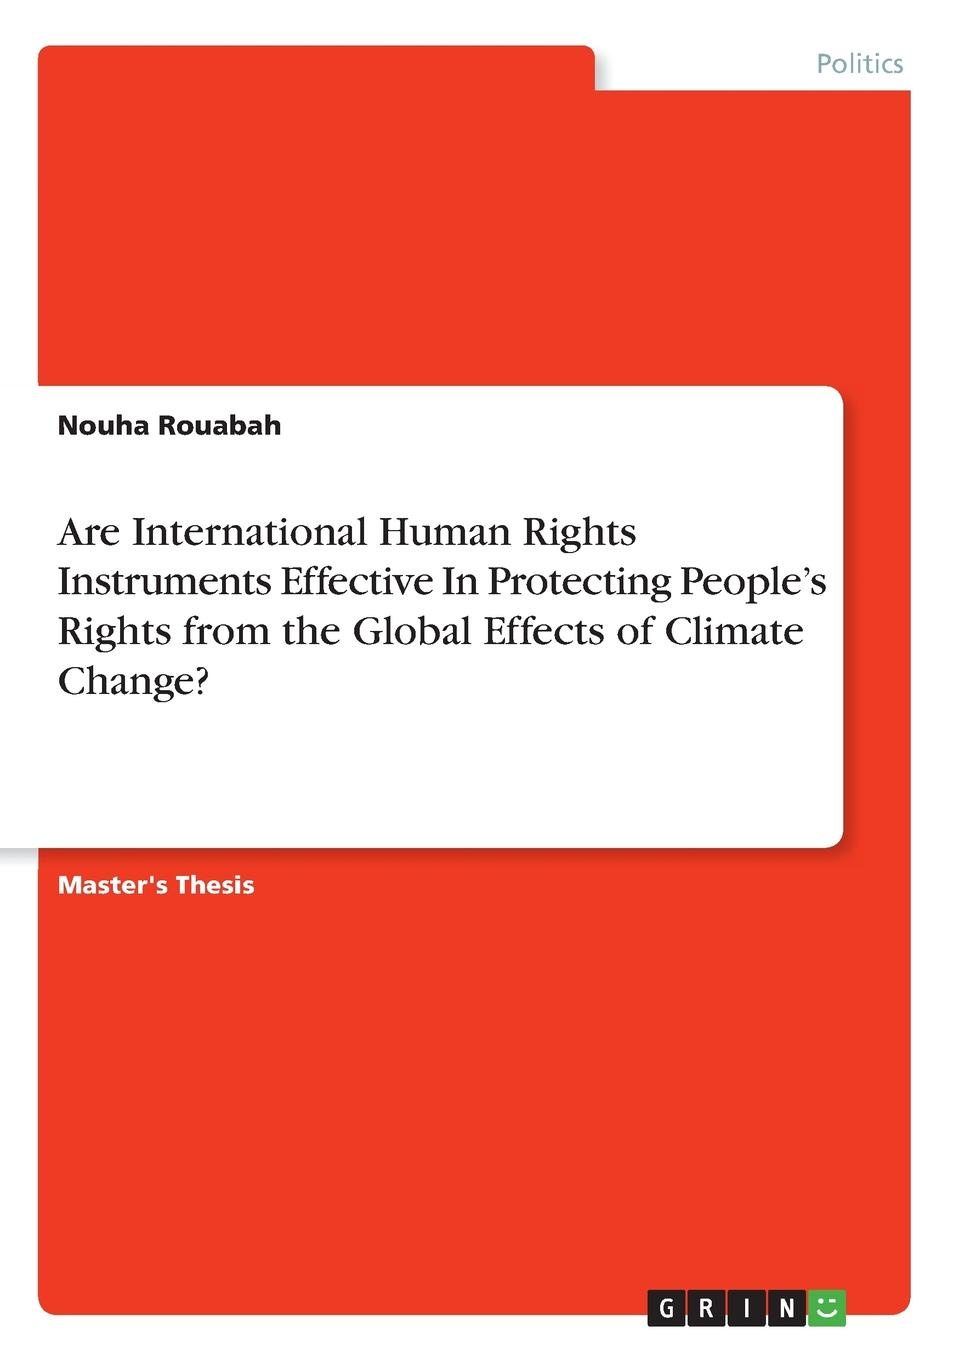 Nouha Rouabah Are International Human Rights Instruments Effective In Protecting People.s Rights from the Global Effects of Climate Change. gill sarvajeet s climate change and plant abiotic stress tolerance